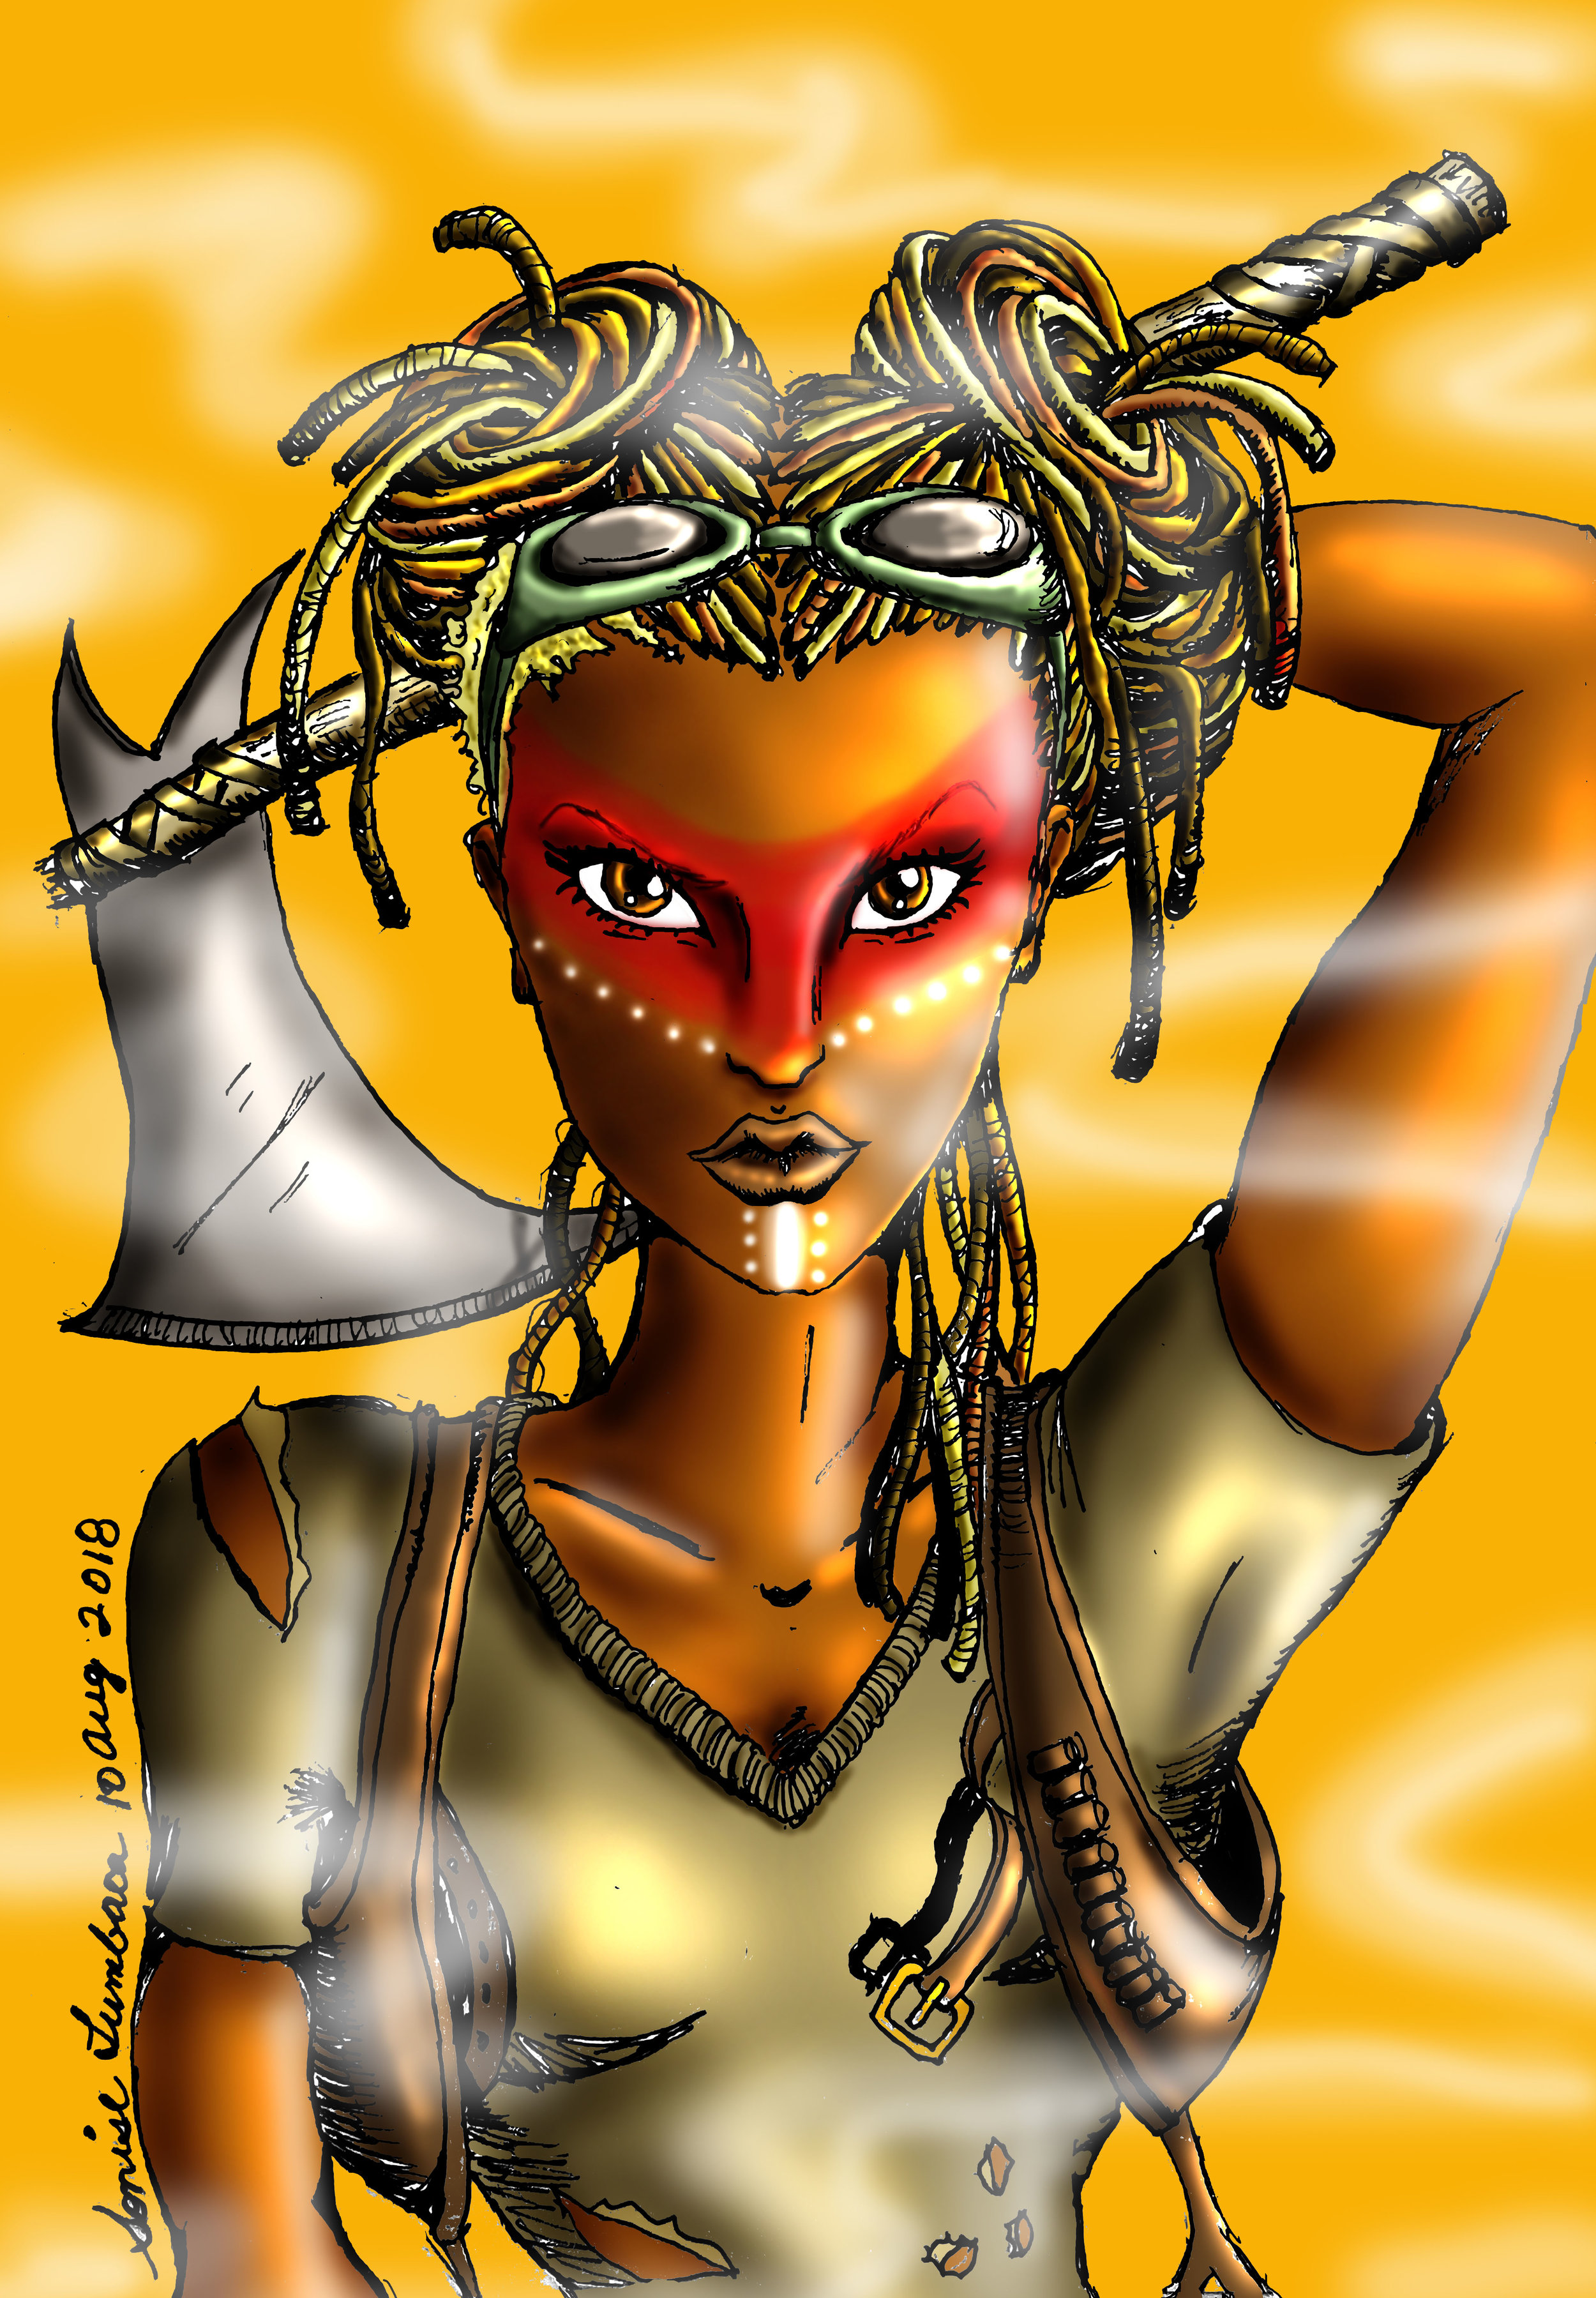 Illustrations of Celine in her various comic forms by Sonise Lumbaca